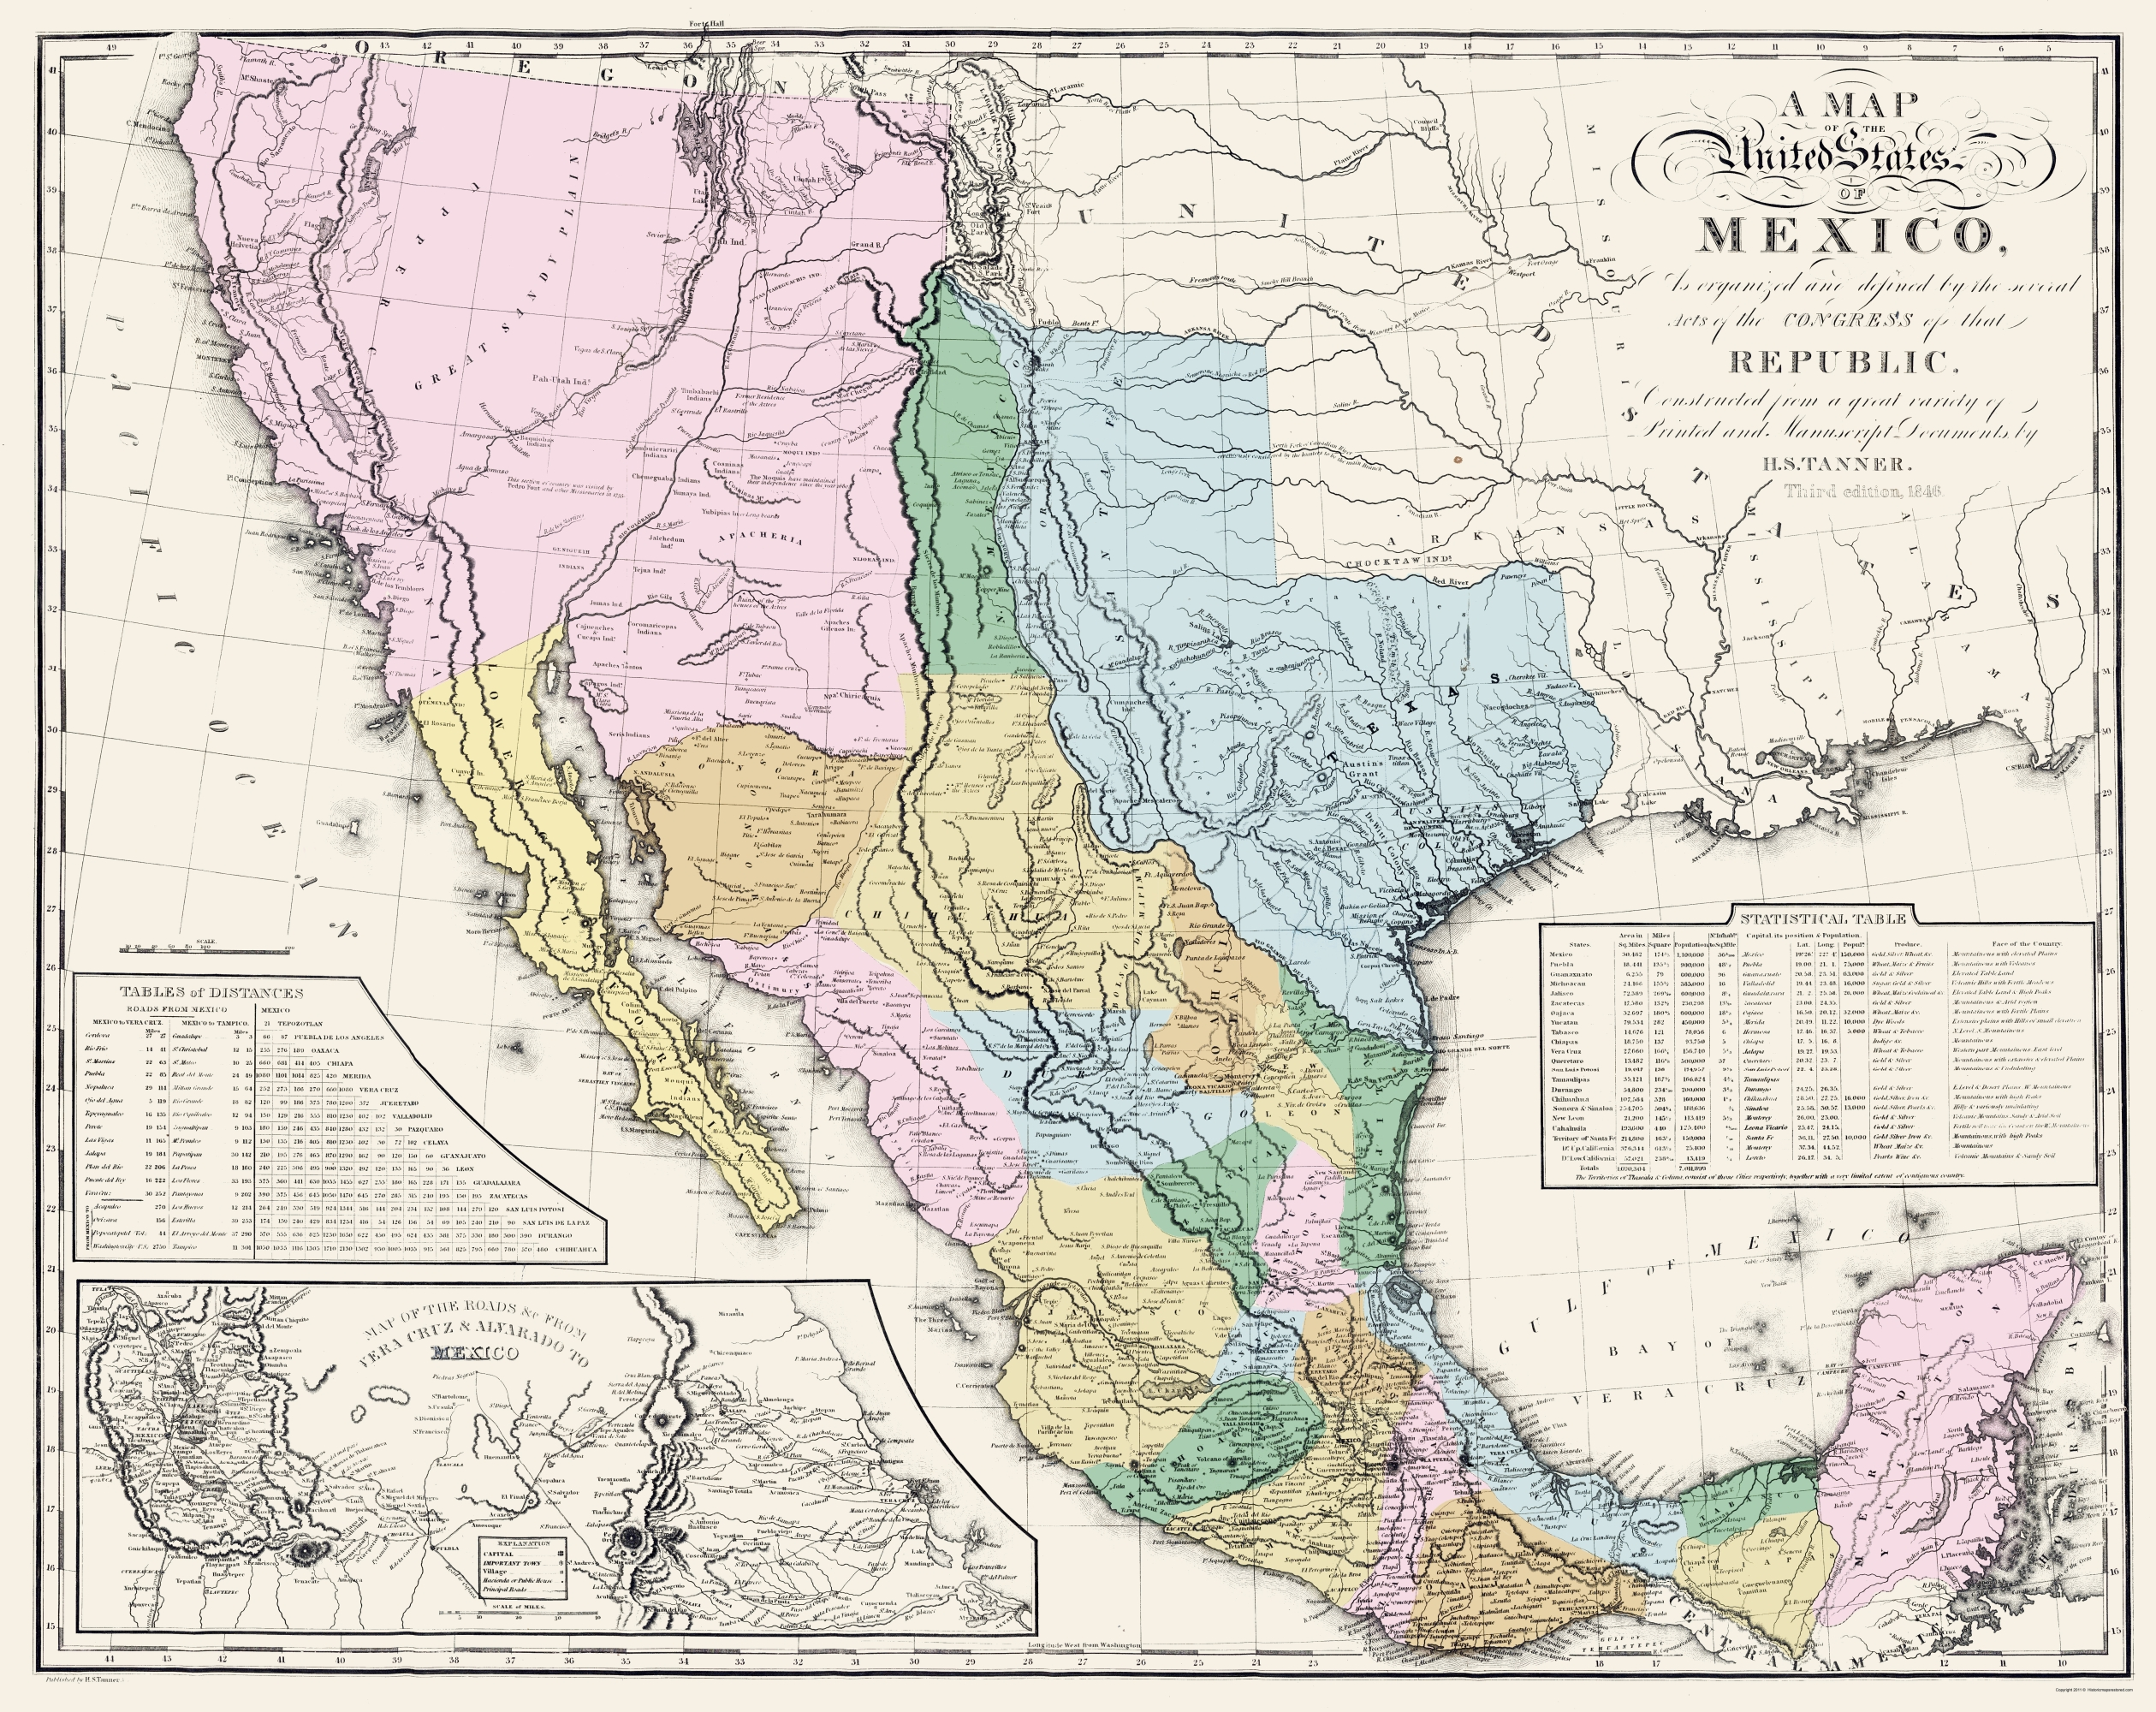 Old Mexico Map - Mexican States - Tanner 1846 - 23 x 28.97 on united kingdom, indonesia map states, connecticut river map states, mexico city, costa rica, nigeria map states, north america, australia map states, brazil map states, mexico flag, el salvador, sweden map states, south america, poland map states, cuba map states, continental united states map states, us maps with states, chile map states, colombia map states, dominican republic map states, the united states map states, southwest asia map states, ecuador map states, united states of america, canada map states, pakistan map states, colorado map states,